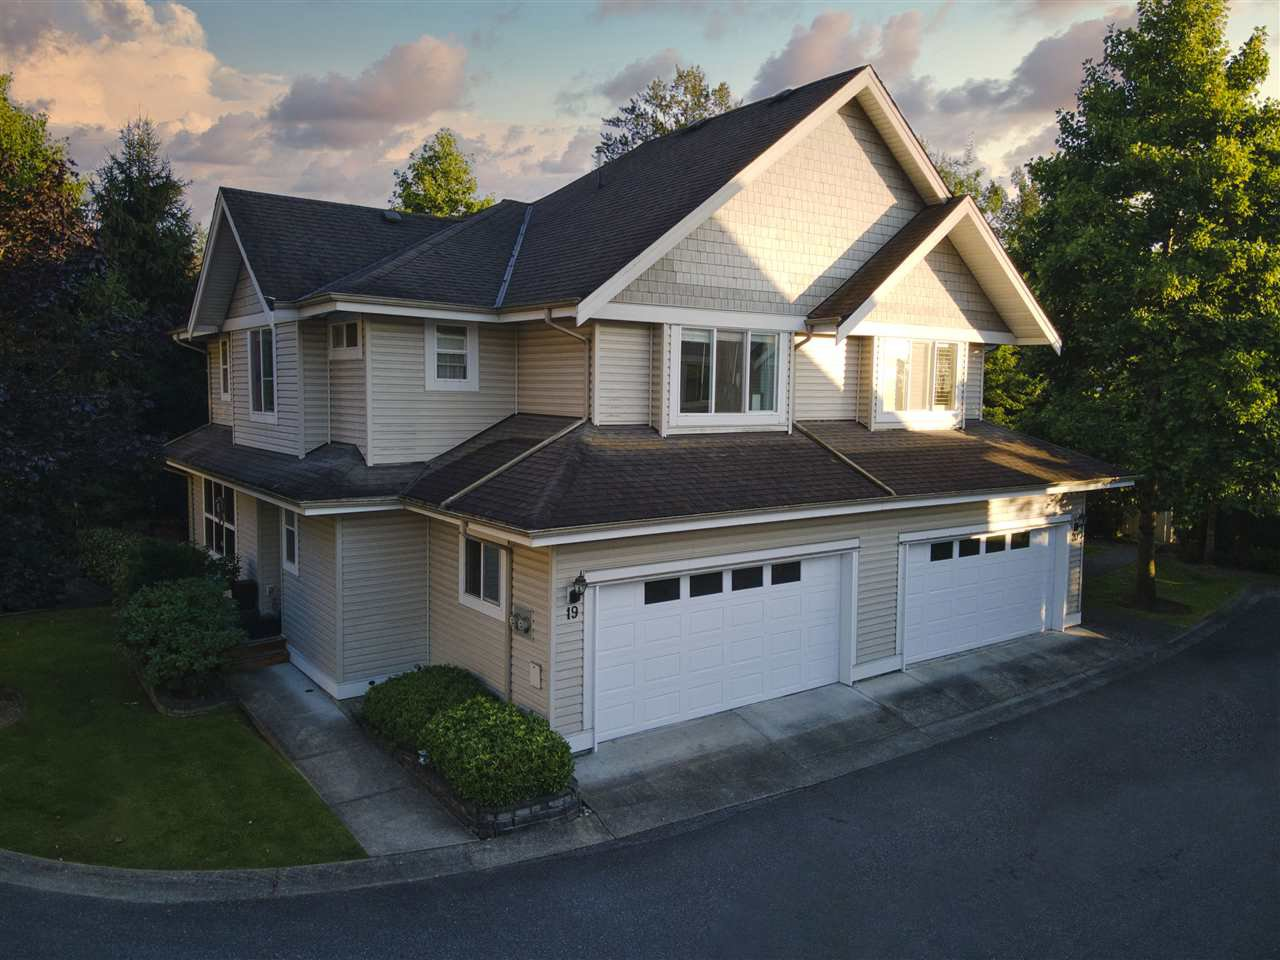 """Main Photo: 19 8568 209 Street in Langley: Walnut Grove Townhouse for sale in """"Creekside Estates"""" : MLS®# R2494218"""